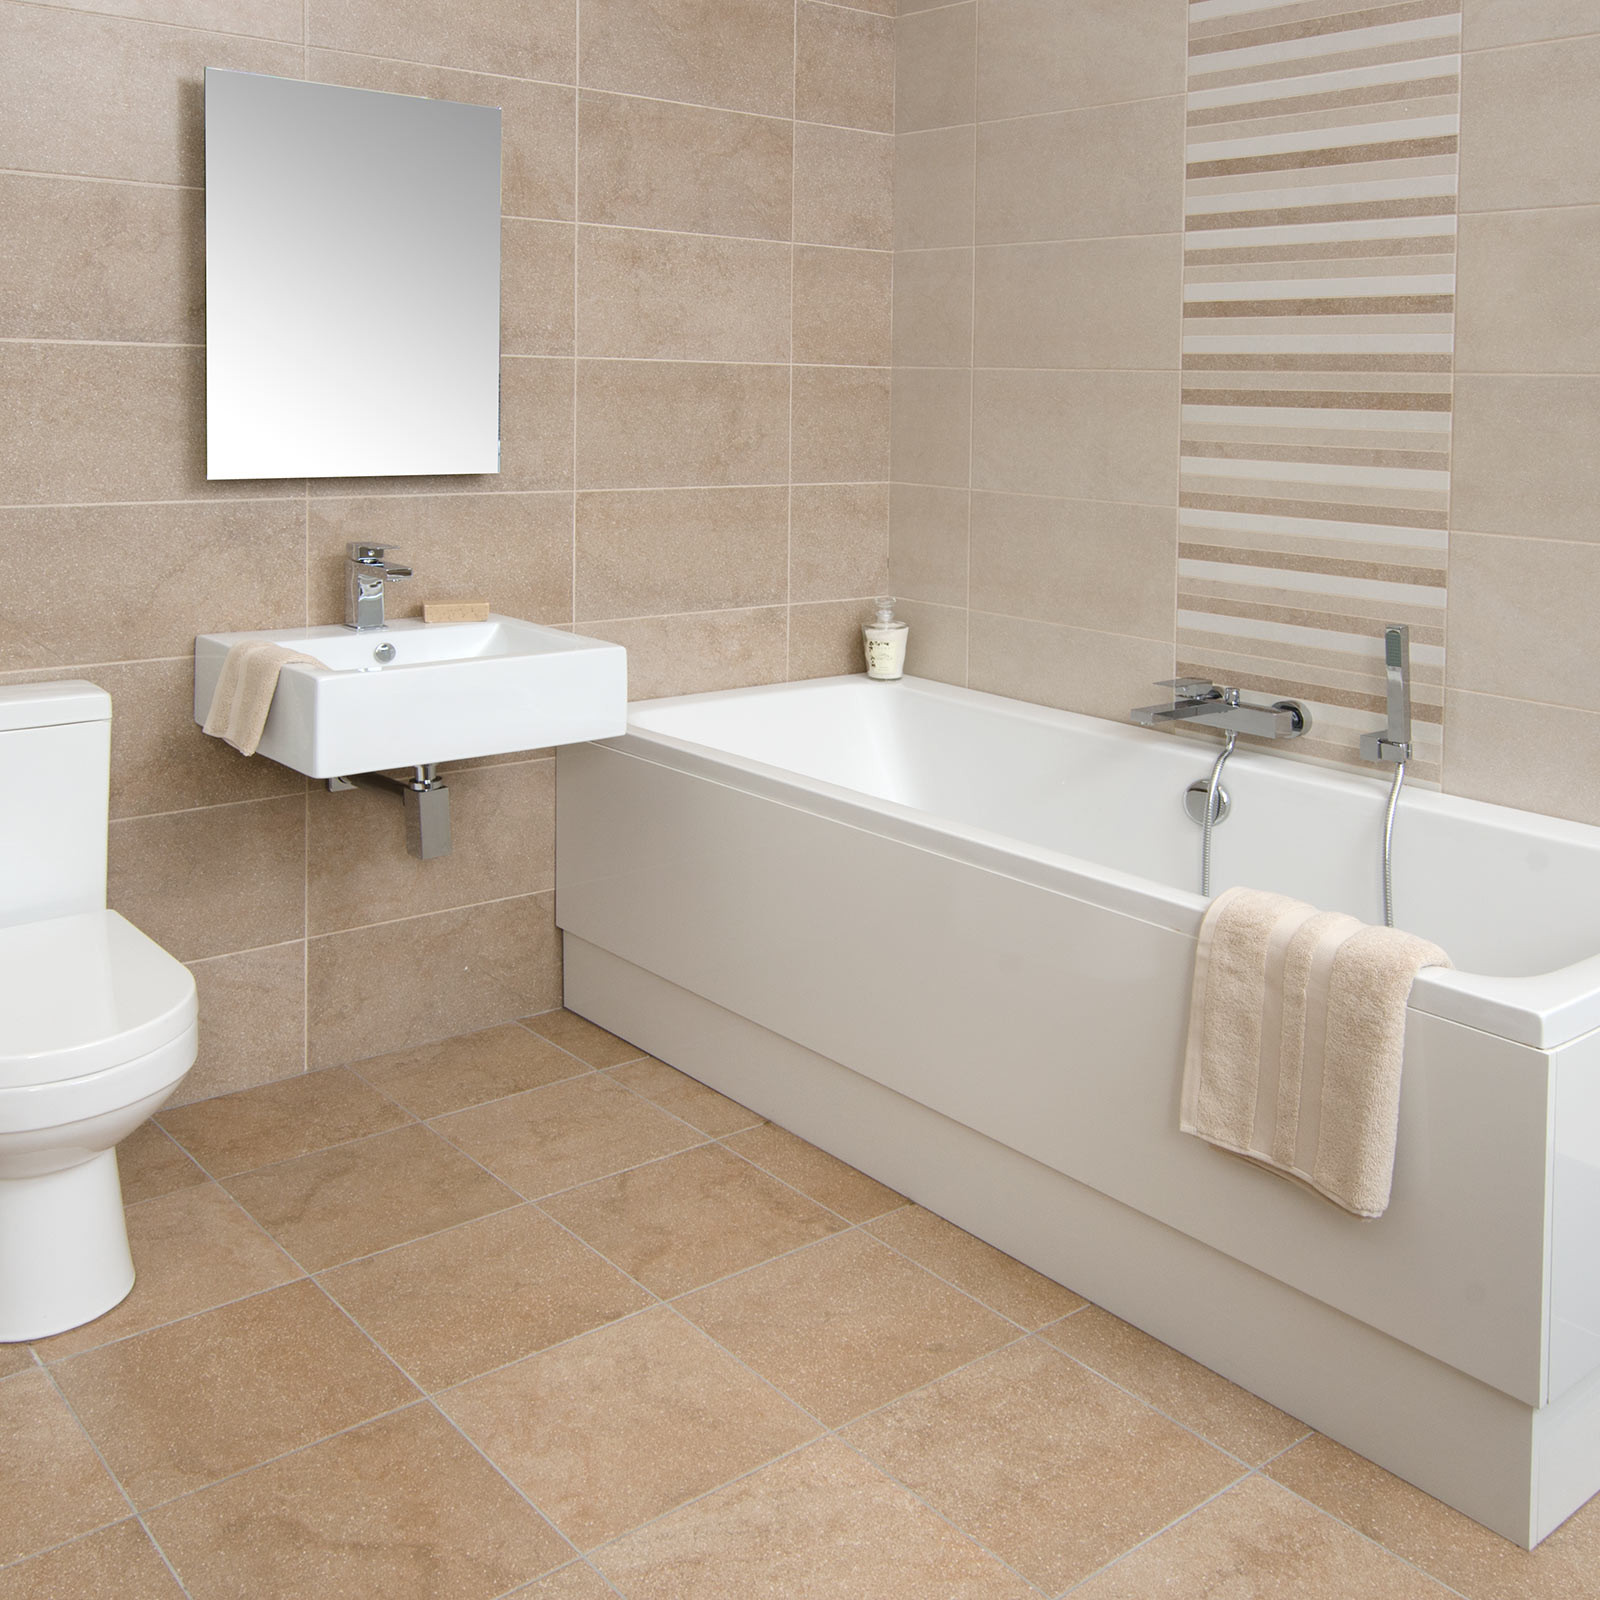 Best Way To Clean Bathroom Wall Tiles: Bucsy Beige Wall Tile